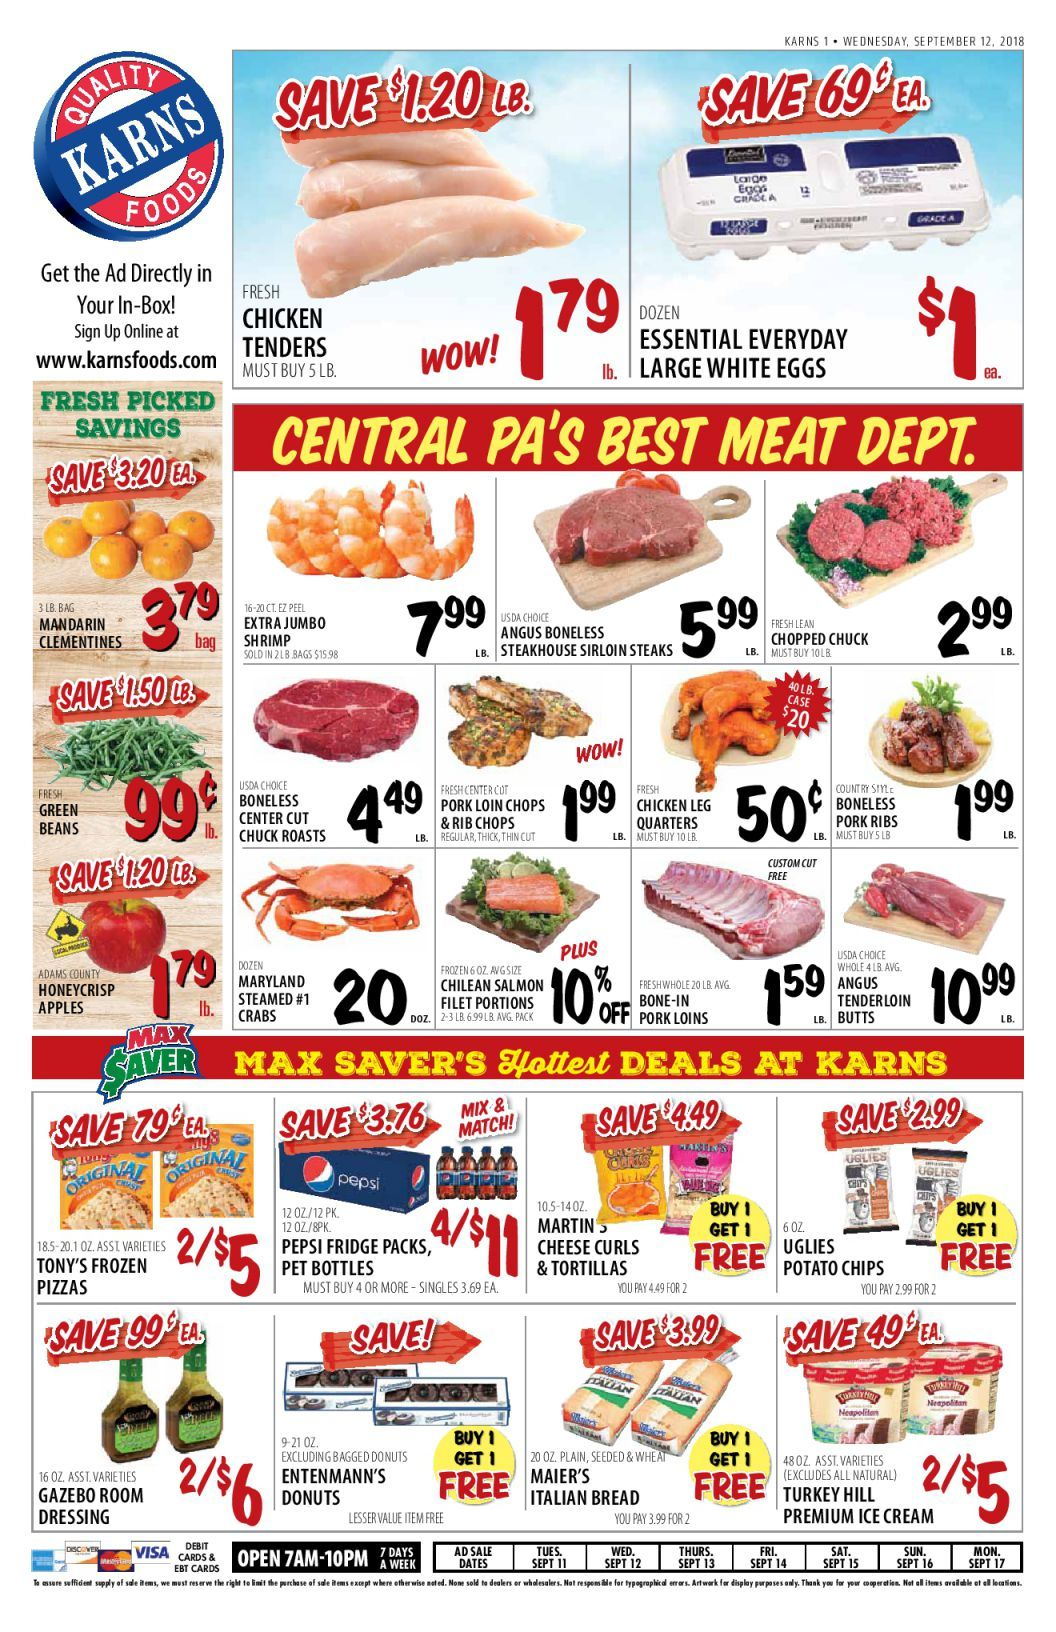 Karns quality foods weekly ad flyer september 10 16